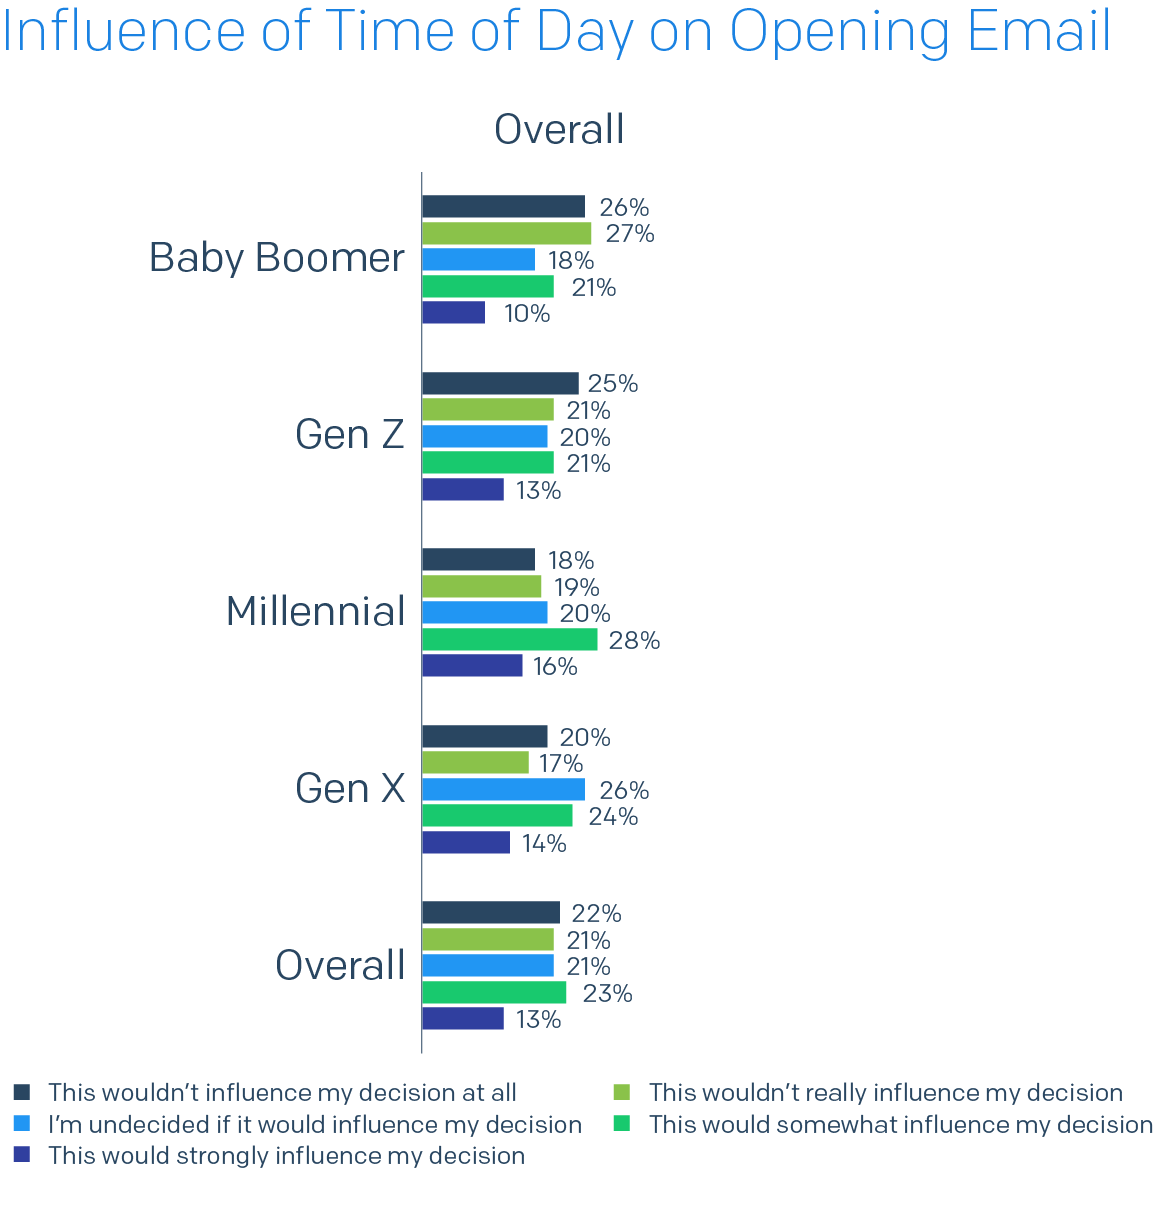 Bar chart of Influence of Time of Day on Opening Email